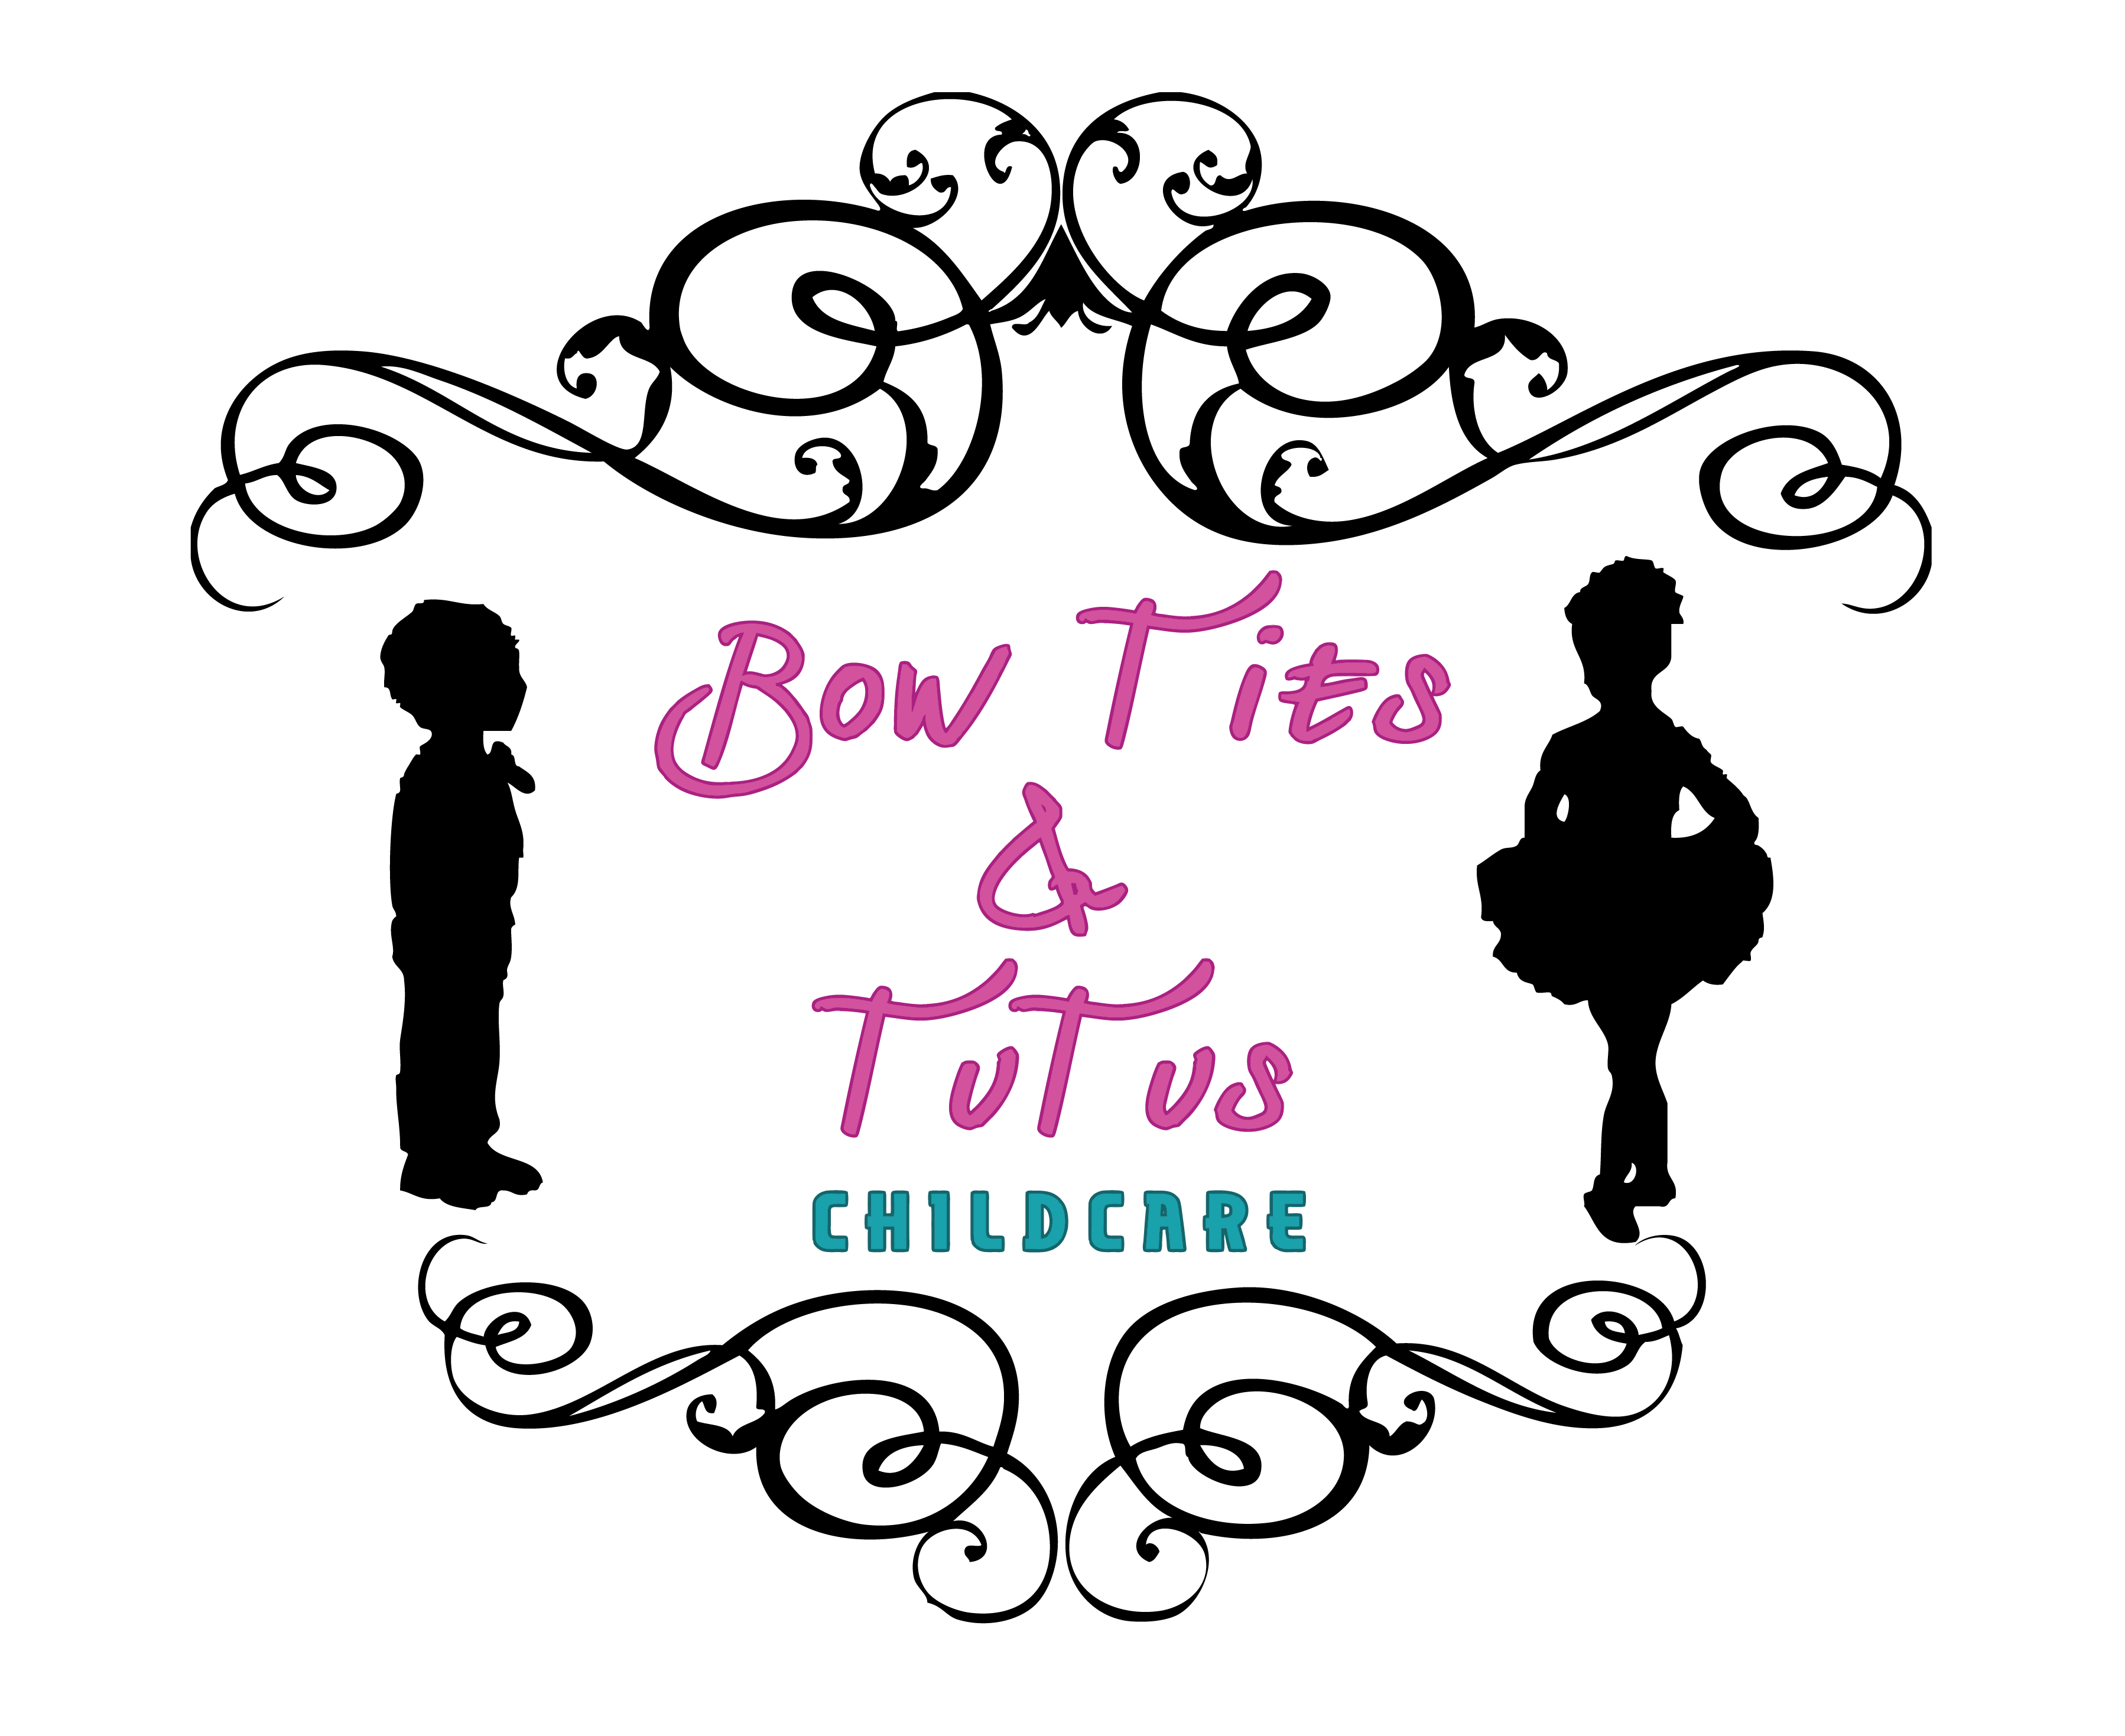 Bow Ties & TuTus Childcare